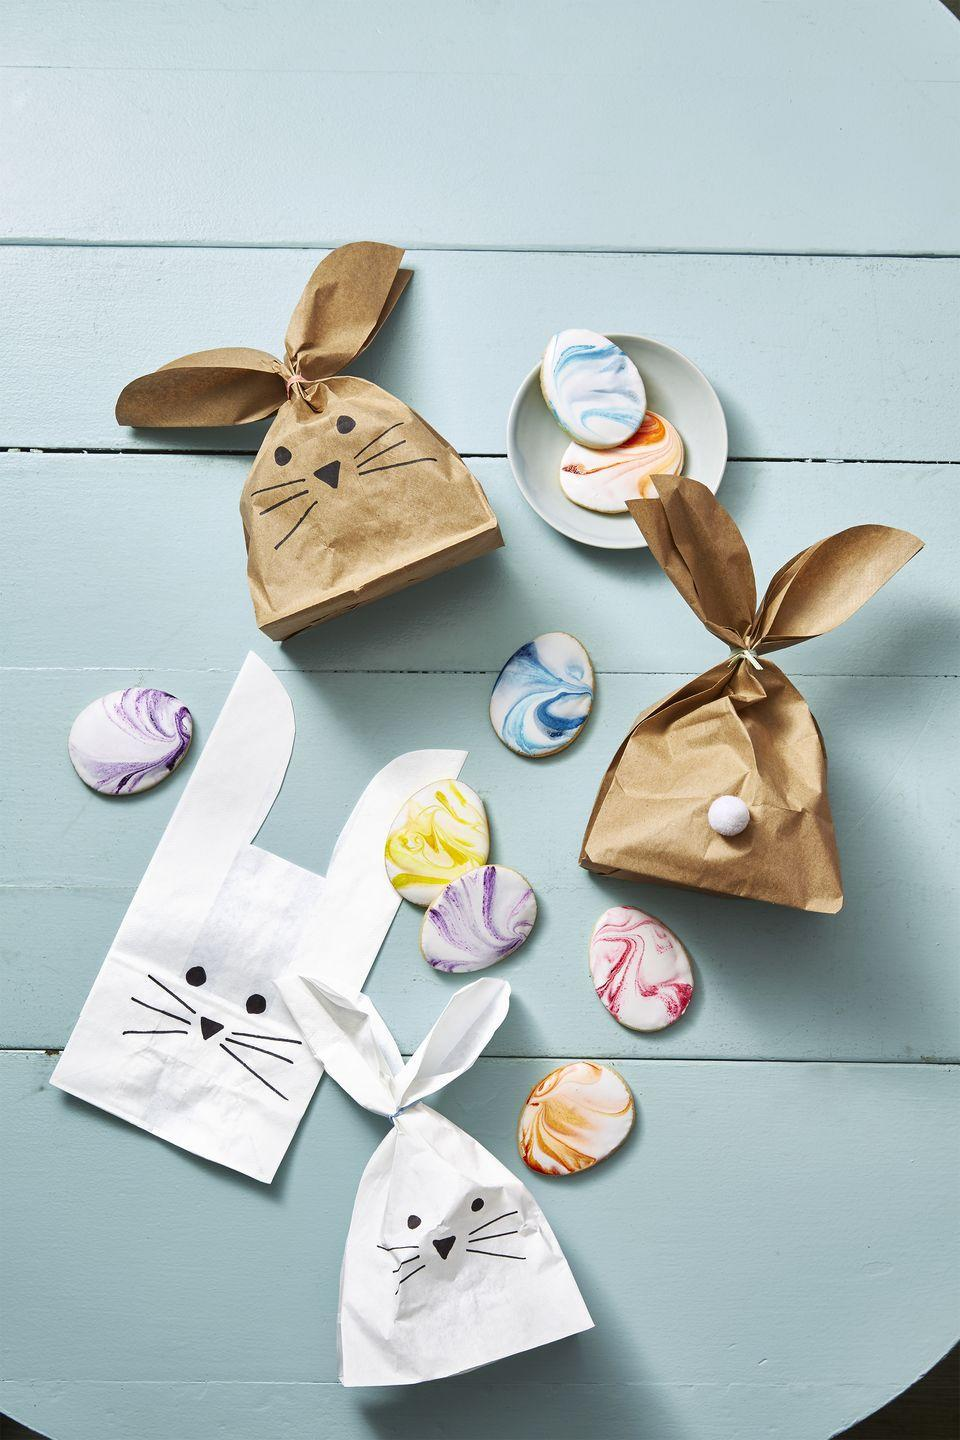 <p>Give everyone a to-go bag for any leftover desserts — and make them festive. Cut paper bags to make bunny-ear shapes, then draw on an adorable bunny face. Don't forget the pom-pom tail! </p>